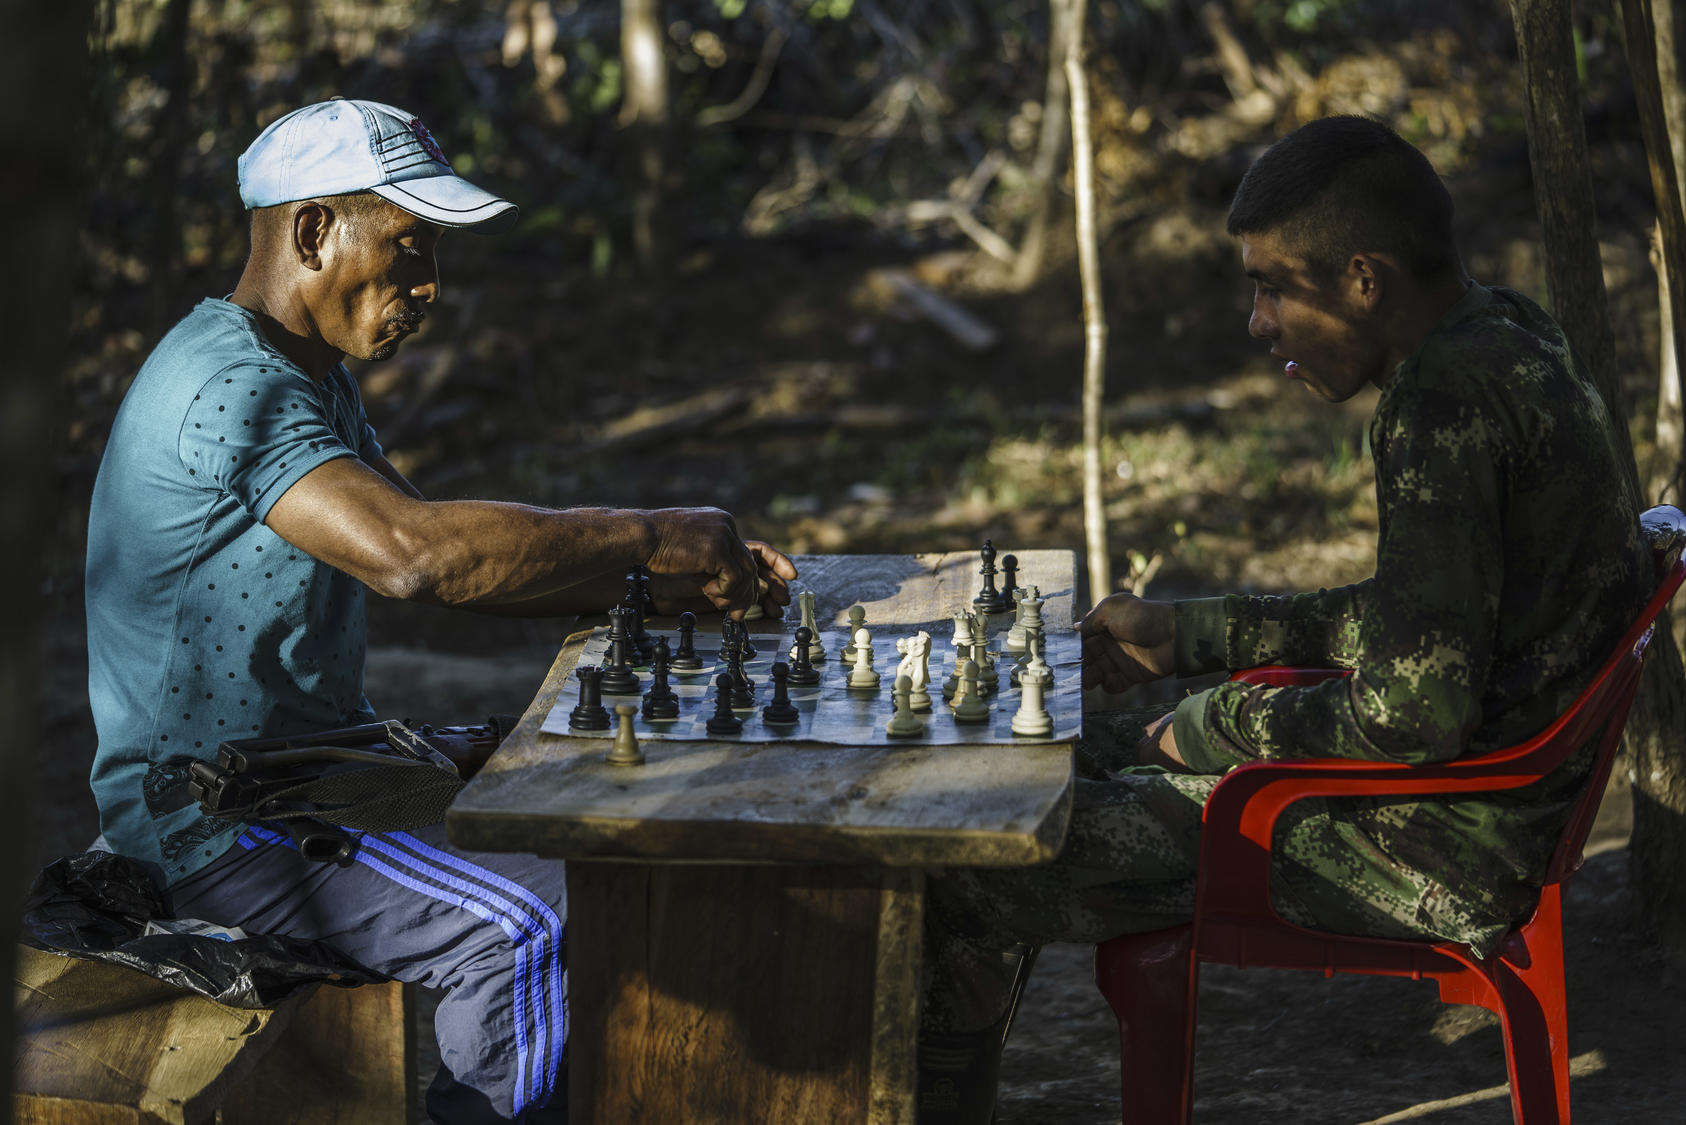 FARC members play chess in one of the zones set up to transition the former rebels back to civilian life, near La Paz, Colombia, Feb. 1, 2017. As the peace process moves ahead, mixed feelings in towns like La Paz are clear evidence of lingering divisions and bitter memories of the conflict. (Federico Rios Escobar/The New York Times)